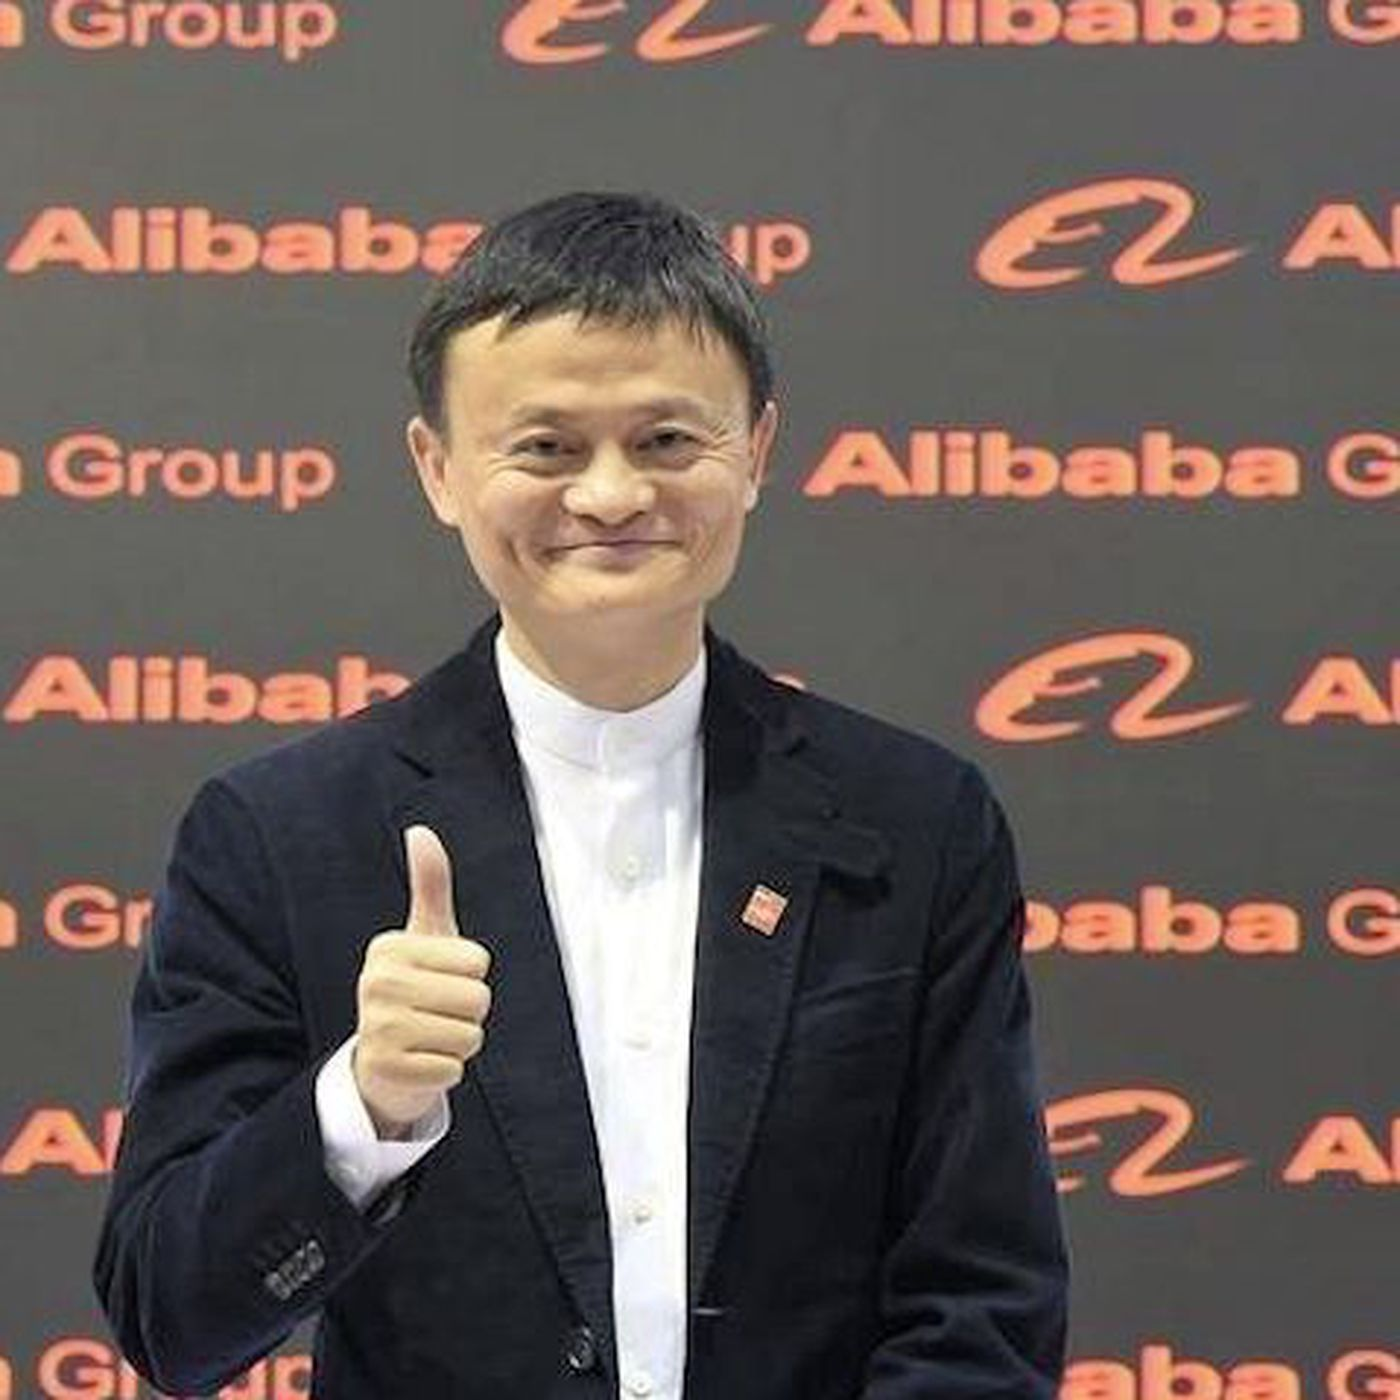 Alibaba In Talks For 1 2 Billion Stake In India Phone Maker Micromax Vox Alibaba cloud offers integrated suite of cloud products and services to businesses in india to help with digital transformation by providing scalable, secure and reliable cloud computing solutions. stake in india phone maker micromax